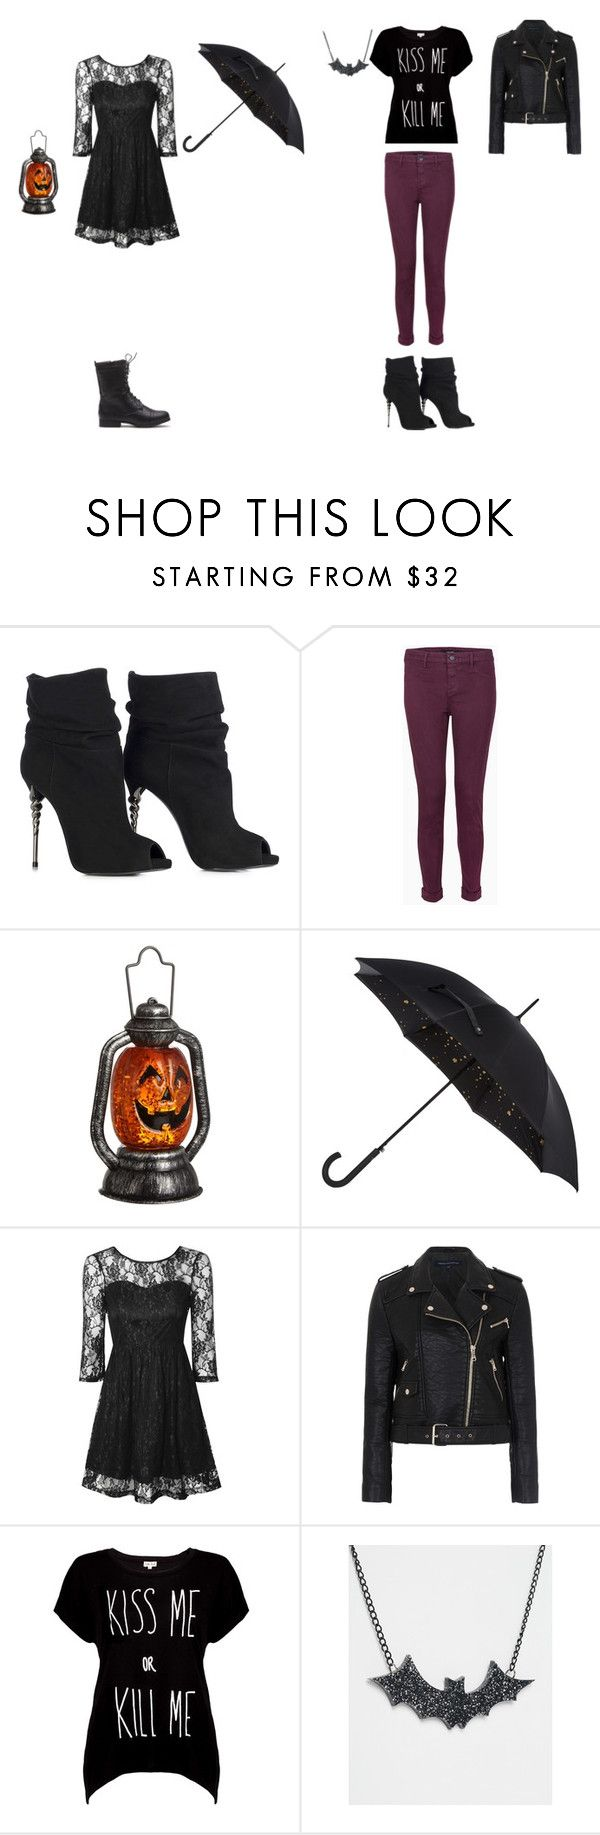 """Jacky And Violet Sinister (The Sinister Sisters)"" by phoenix1053 ❤ liked on Polyvore featuring J Brand, John Lewis, Fulton, True Decadence, French Connection, Rotten Roach, Suzywan DELUXE, women's clothing, women's fashion and women"